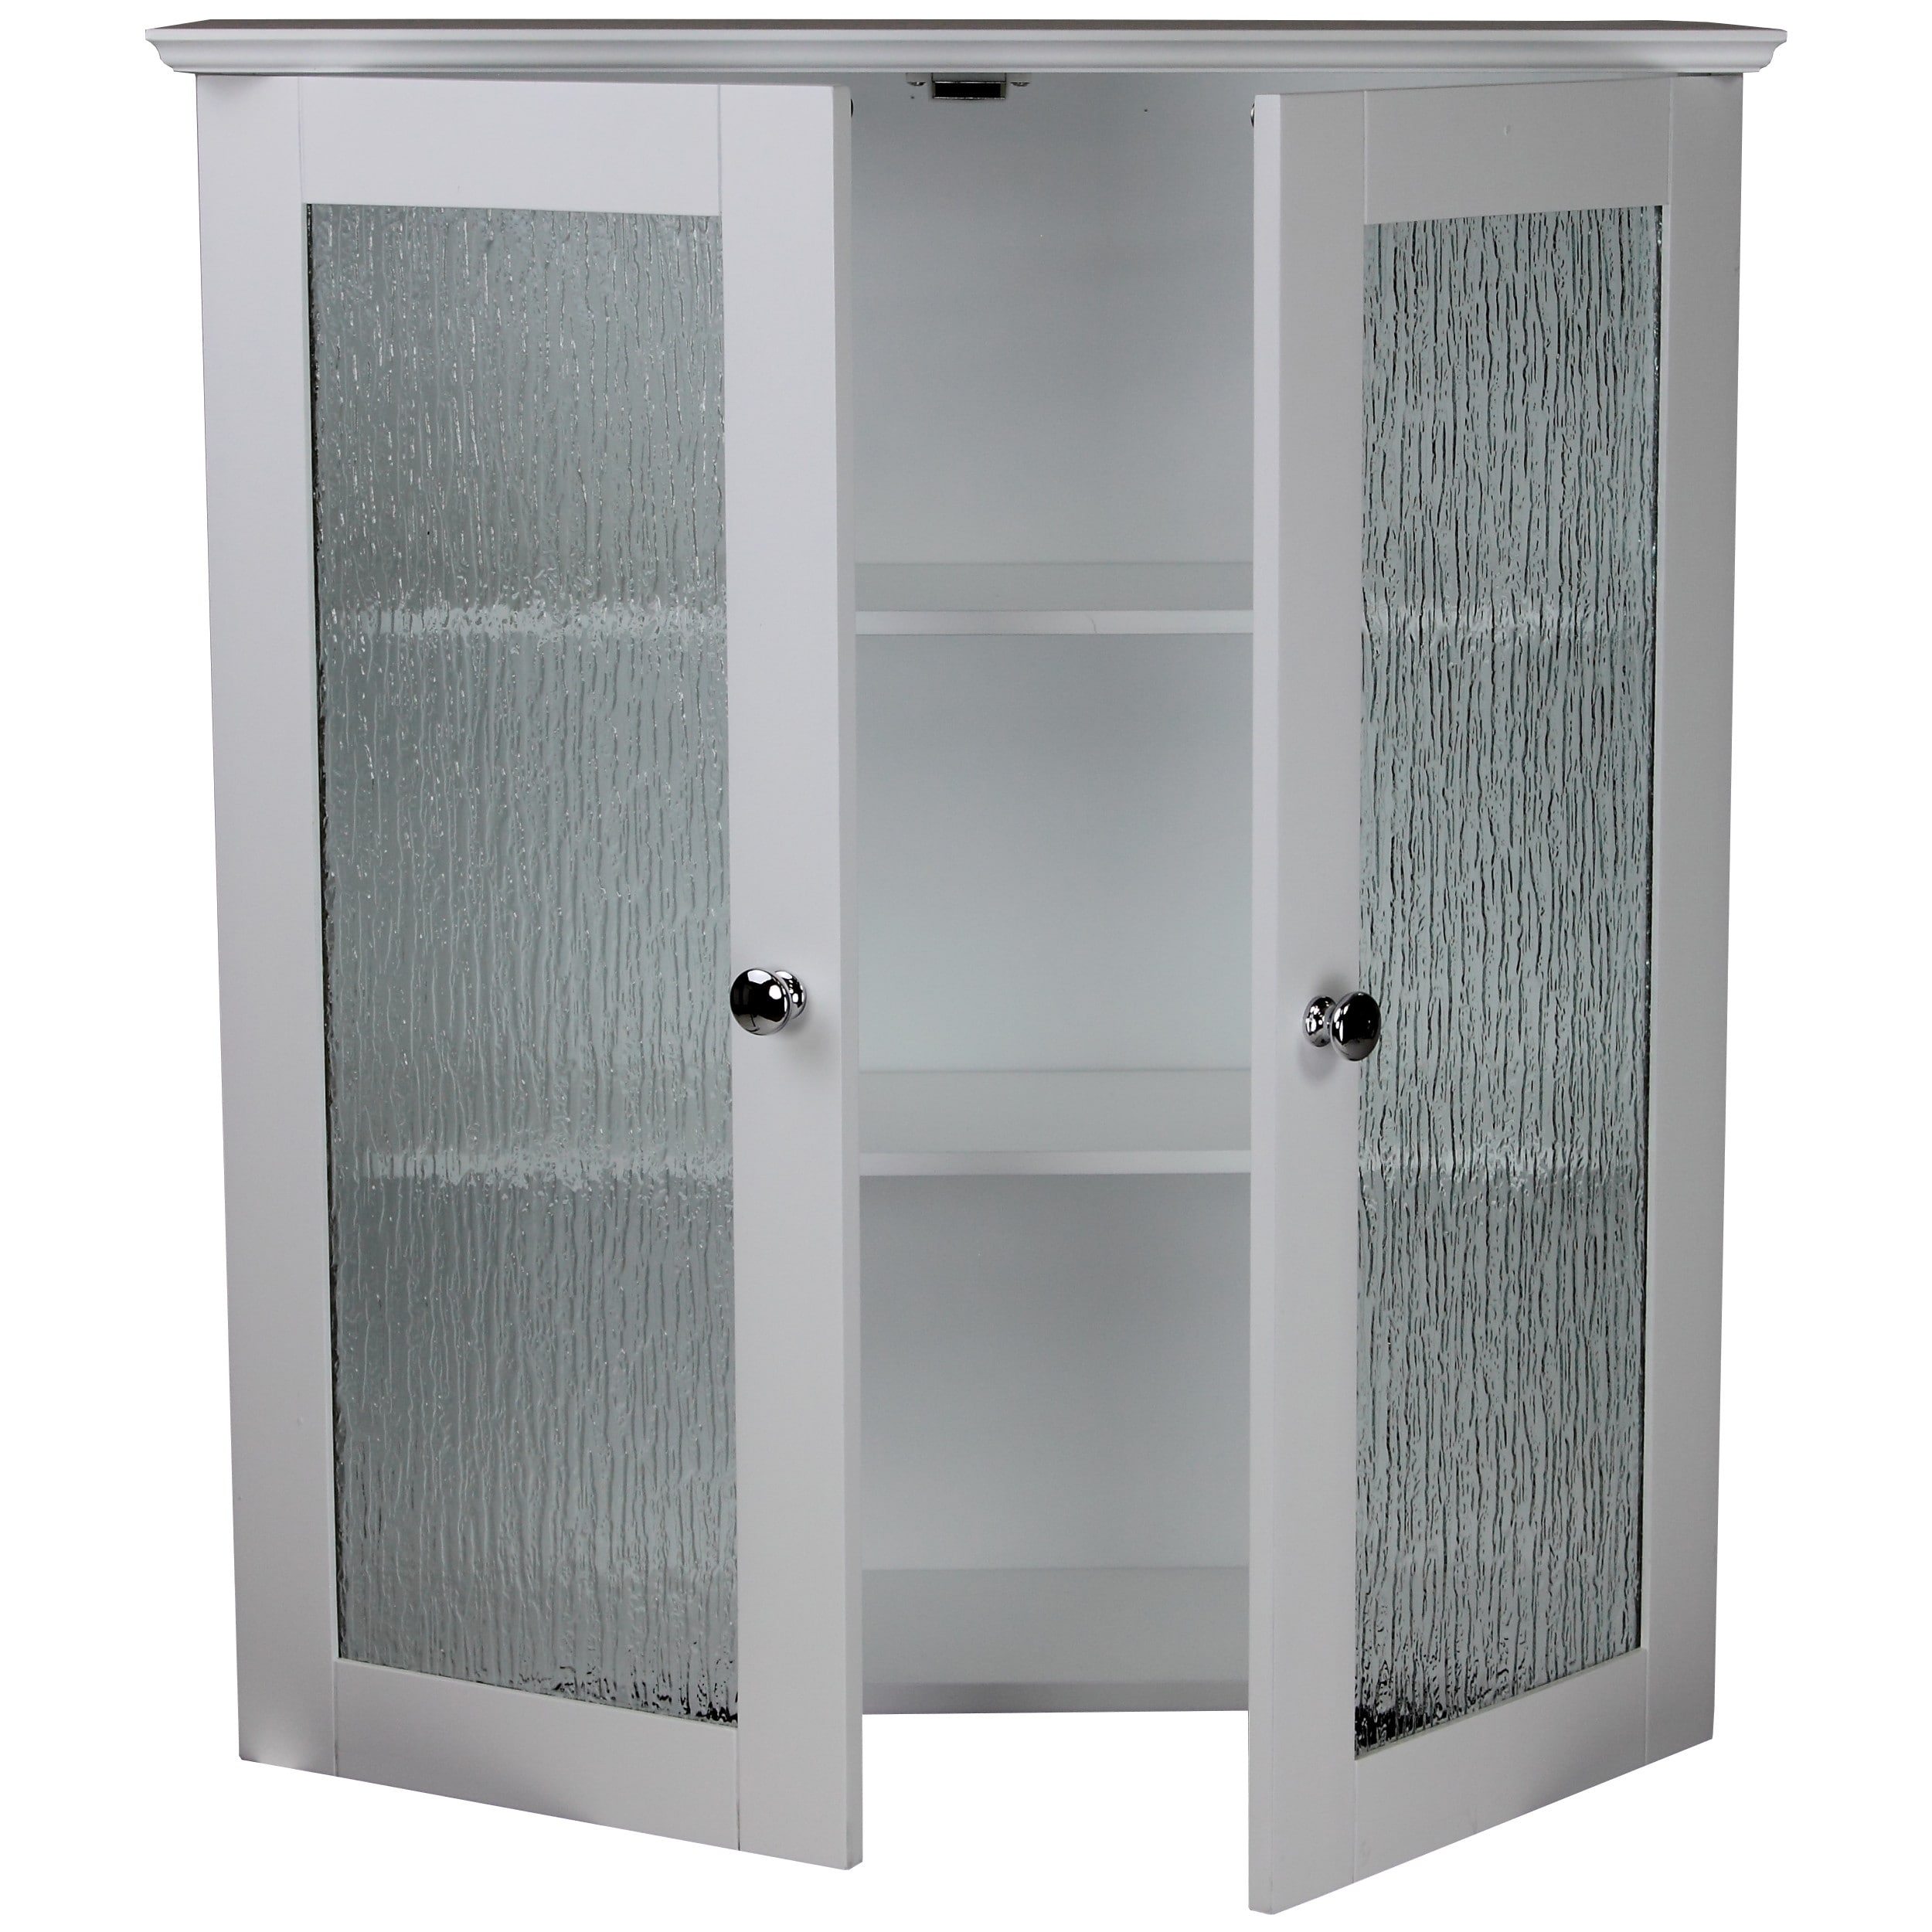 Shop Highland White Double Glass Door Wall Cabinet By Elegant Home